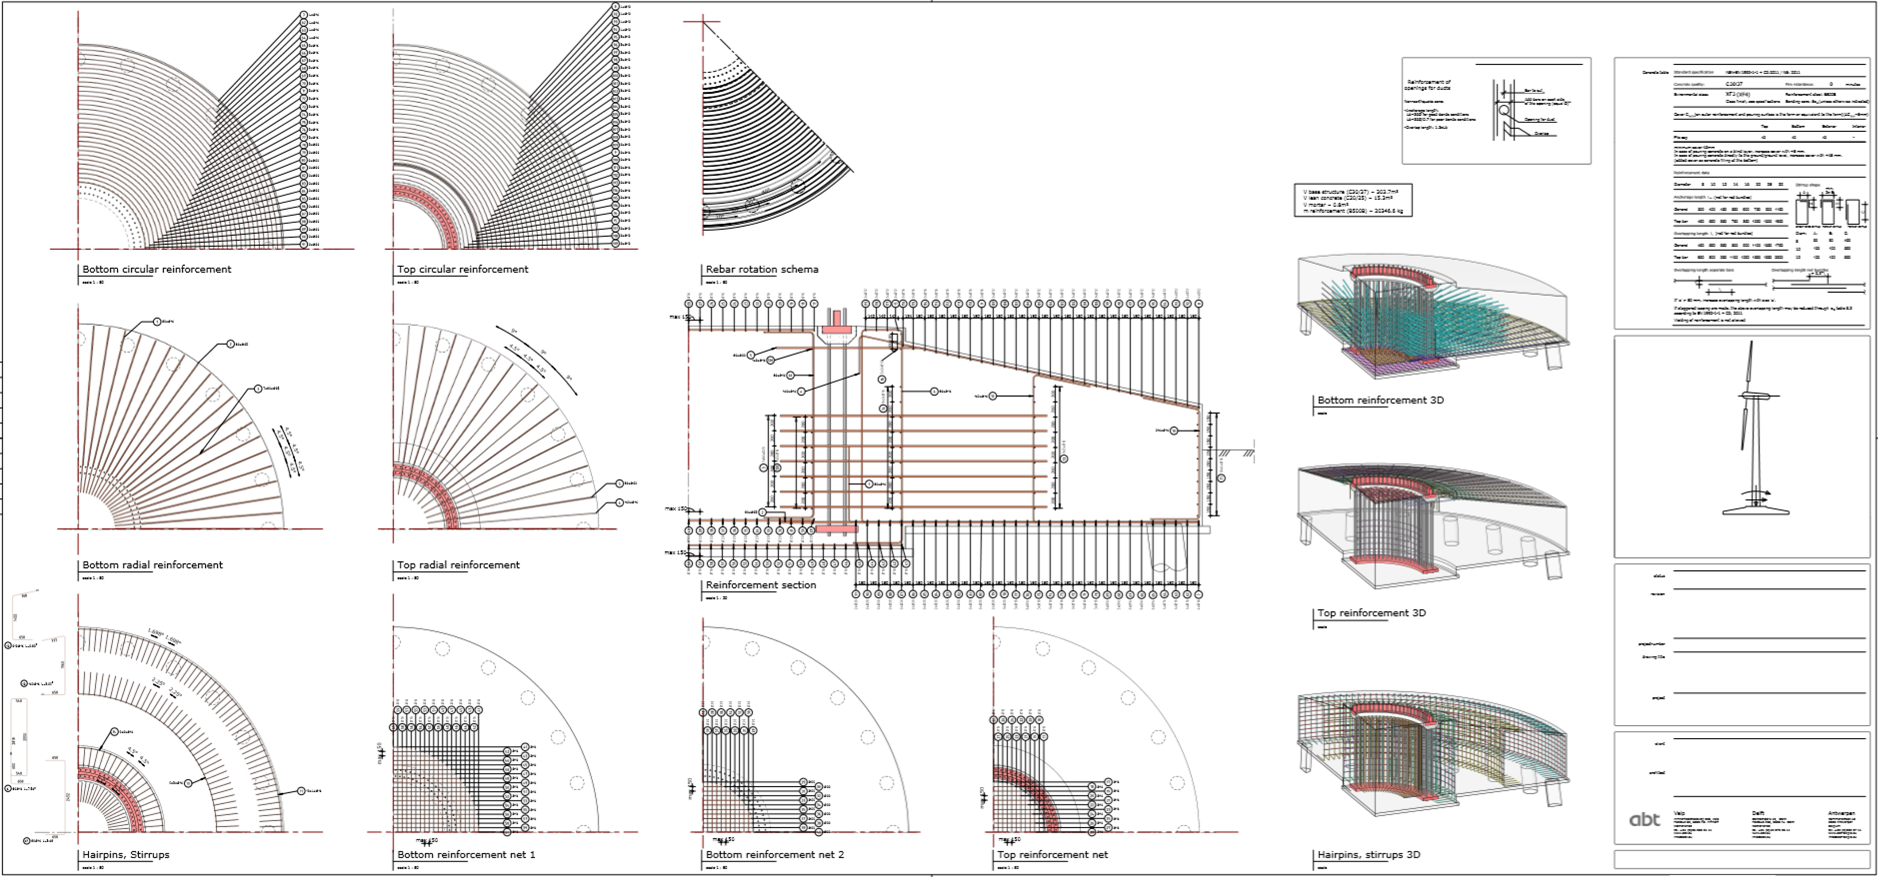 Rebar modelling in revit with dynamo use case by abt for How to read foundation blueprints